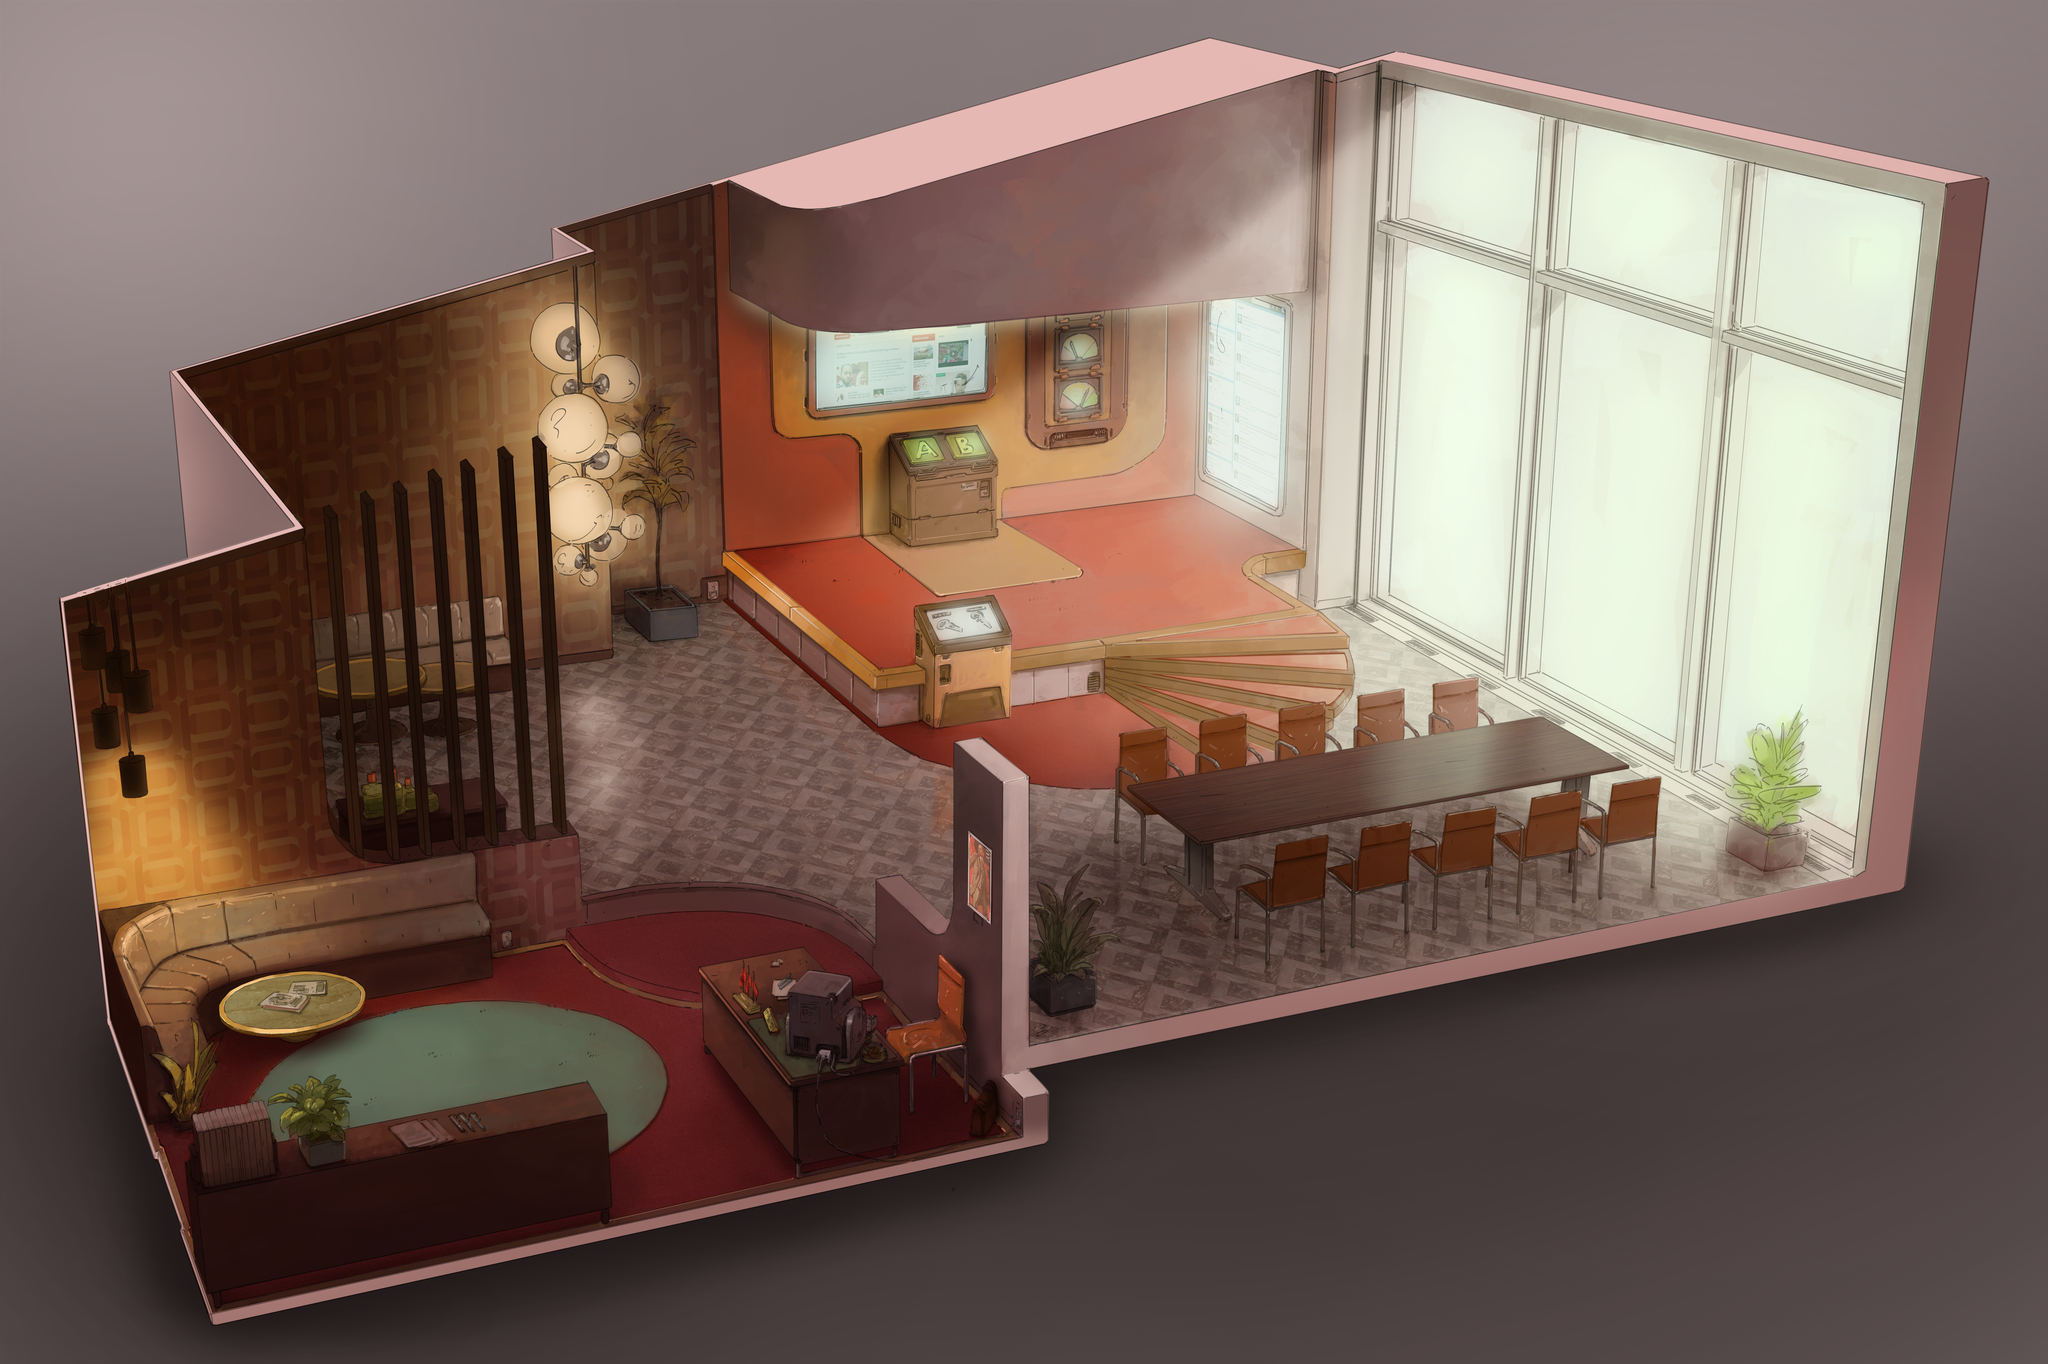 Concept art - Main Office - Real or fake news